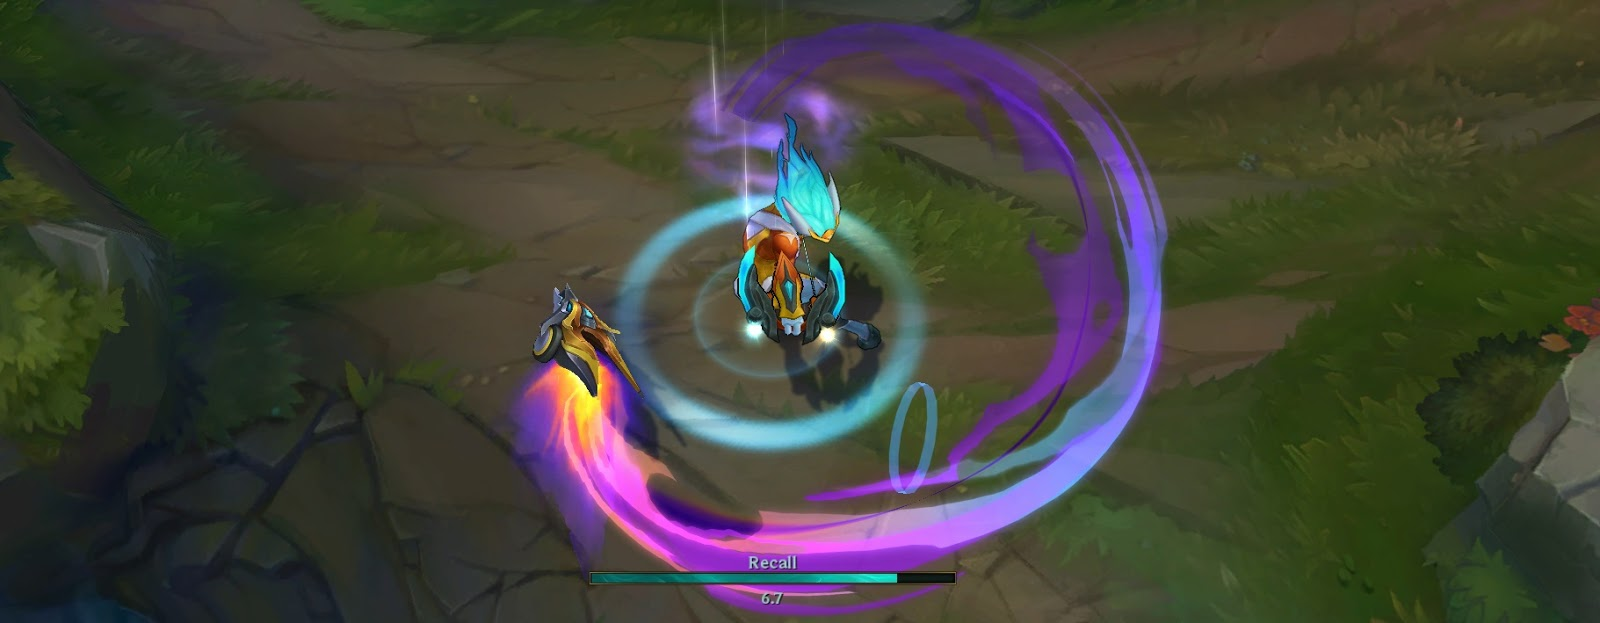 Super Galaxy Kindred recall b